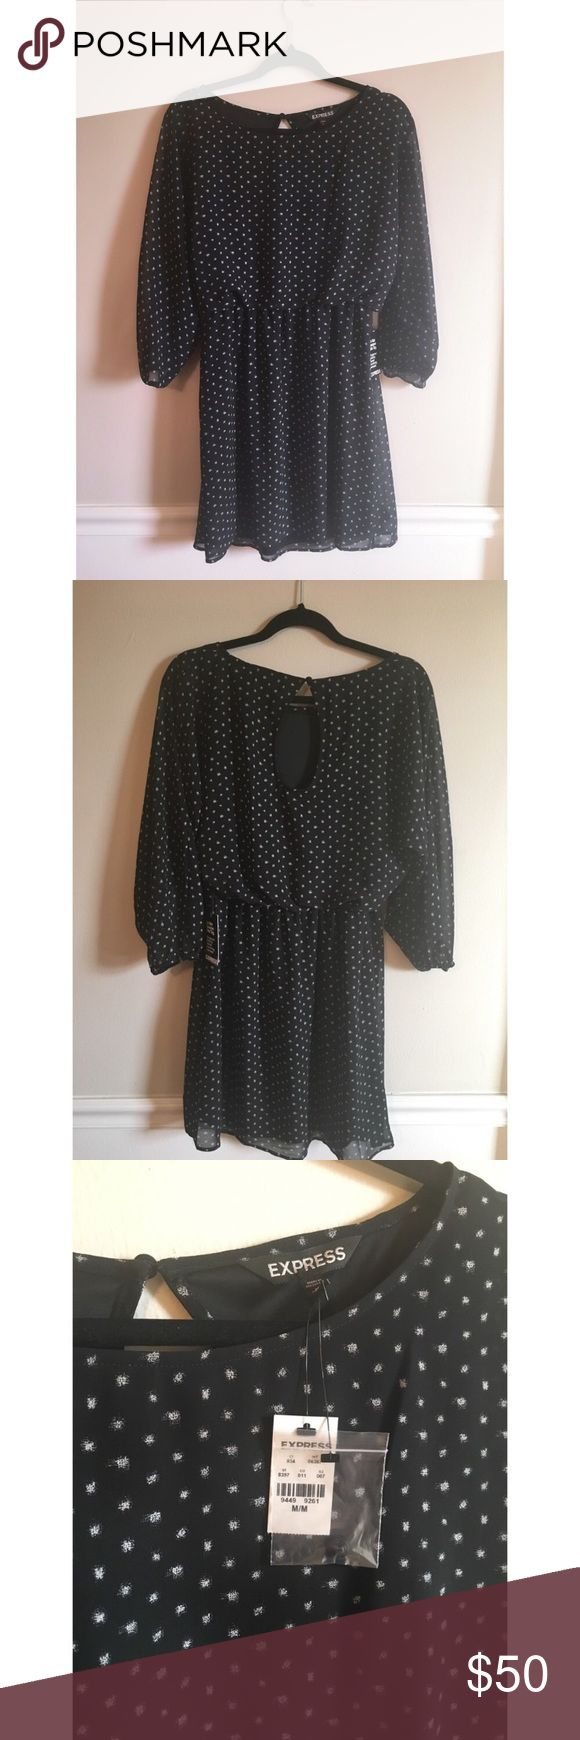 Express Polka Dot Short Dress Size Medium NWT New With Tags! This classic print is having a major moment! All your favorite fashion bloggers are wearing polka dots! This is a must have in your wardrobe! Express Dresses